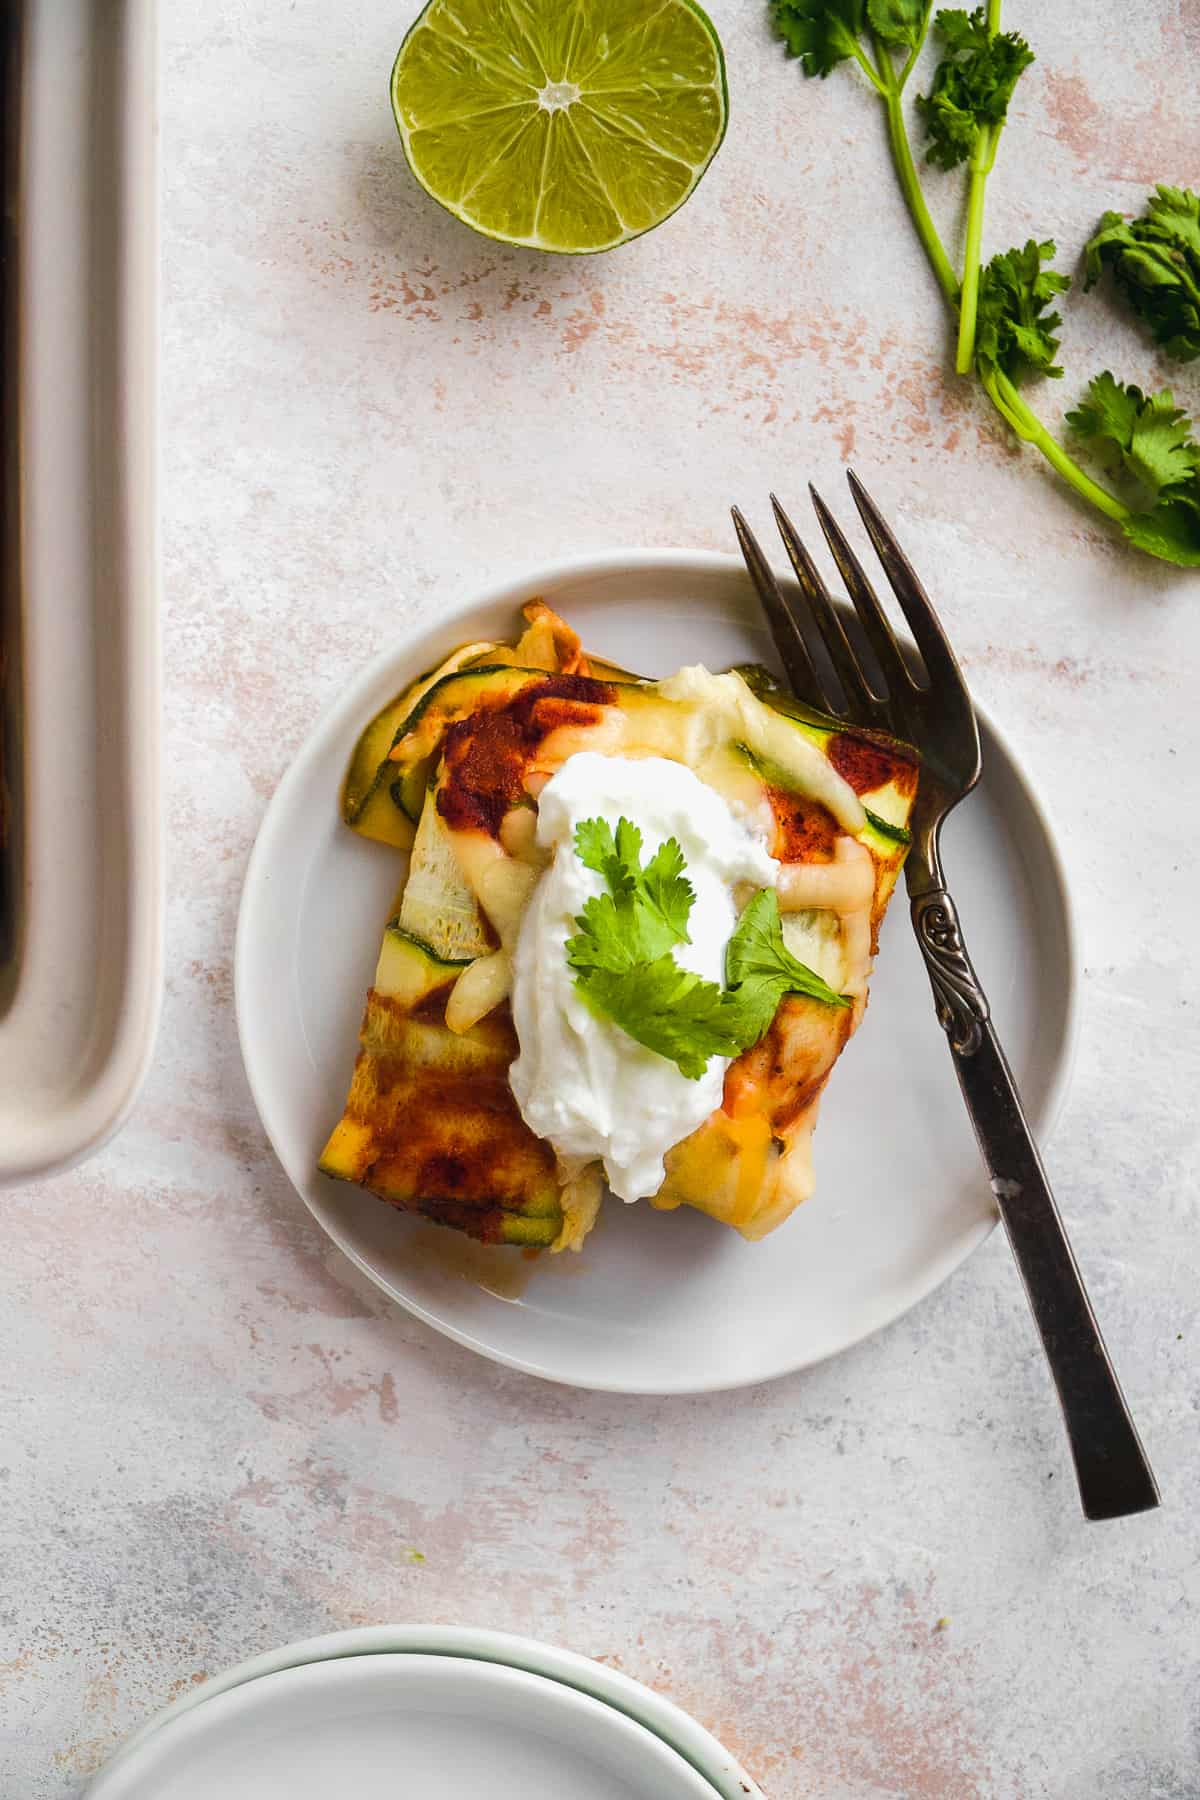 Overhead view of zucchini enchiladas on a white plate with a fork resting on the plate.